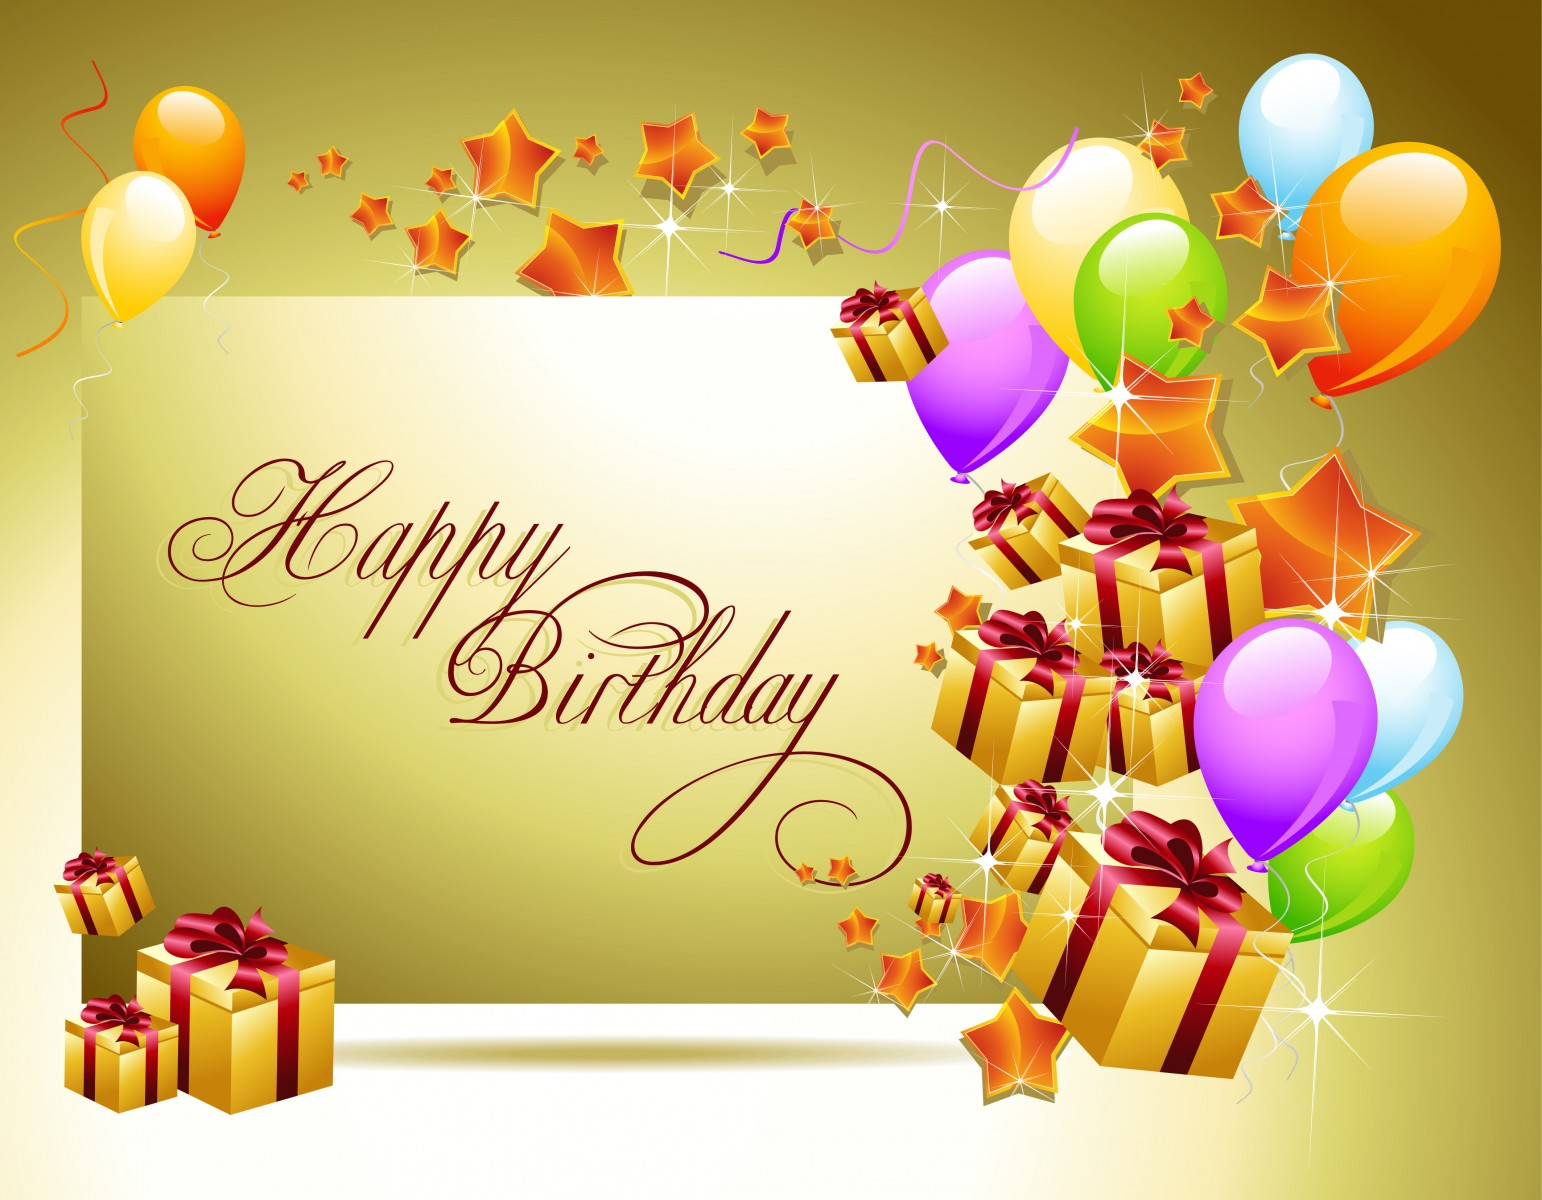 http://fci.md/assets/images/Holidays___Birthday_Congratulations_on_the_birthday__golden_background_051789_.jpg